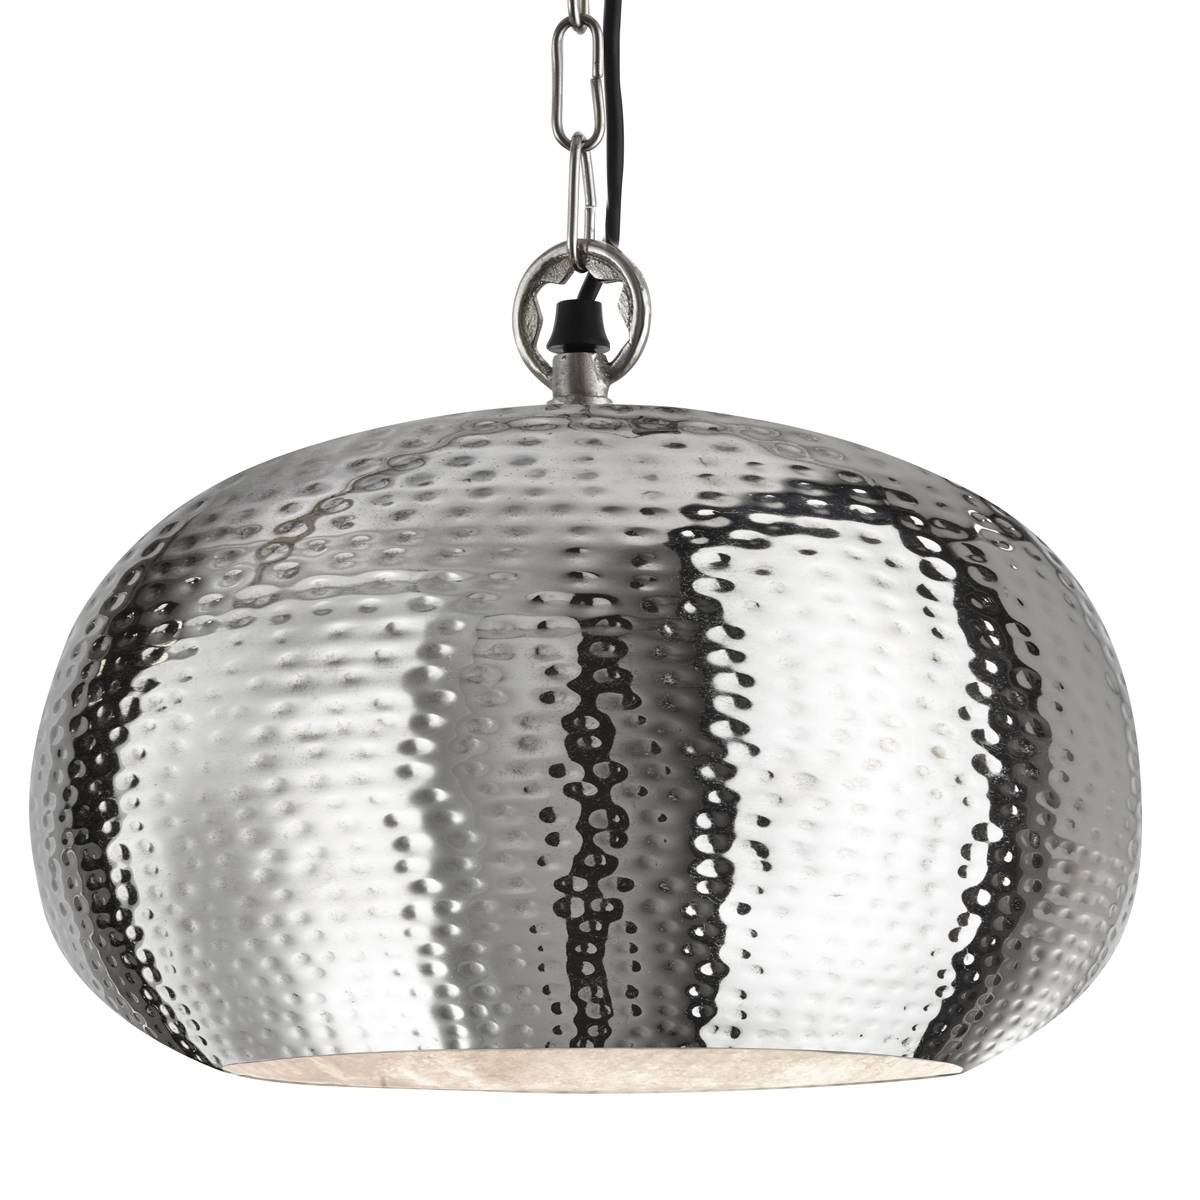 Shiny Nickel Large Dome Shaped Hammered Pendant - Searchlight 2094 within Hammered Pendant Lights (Image 11 of 15)